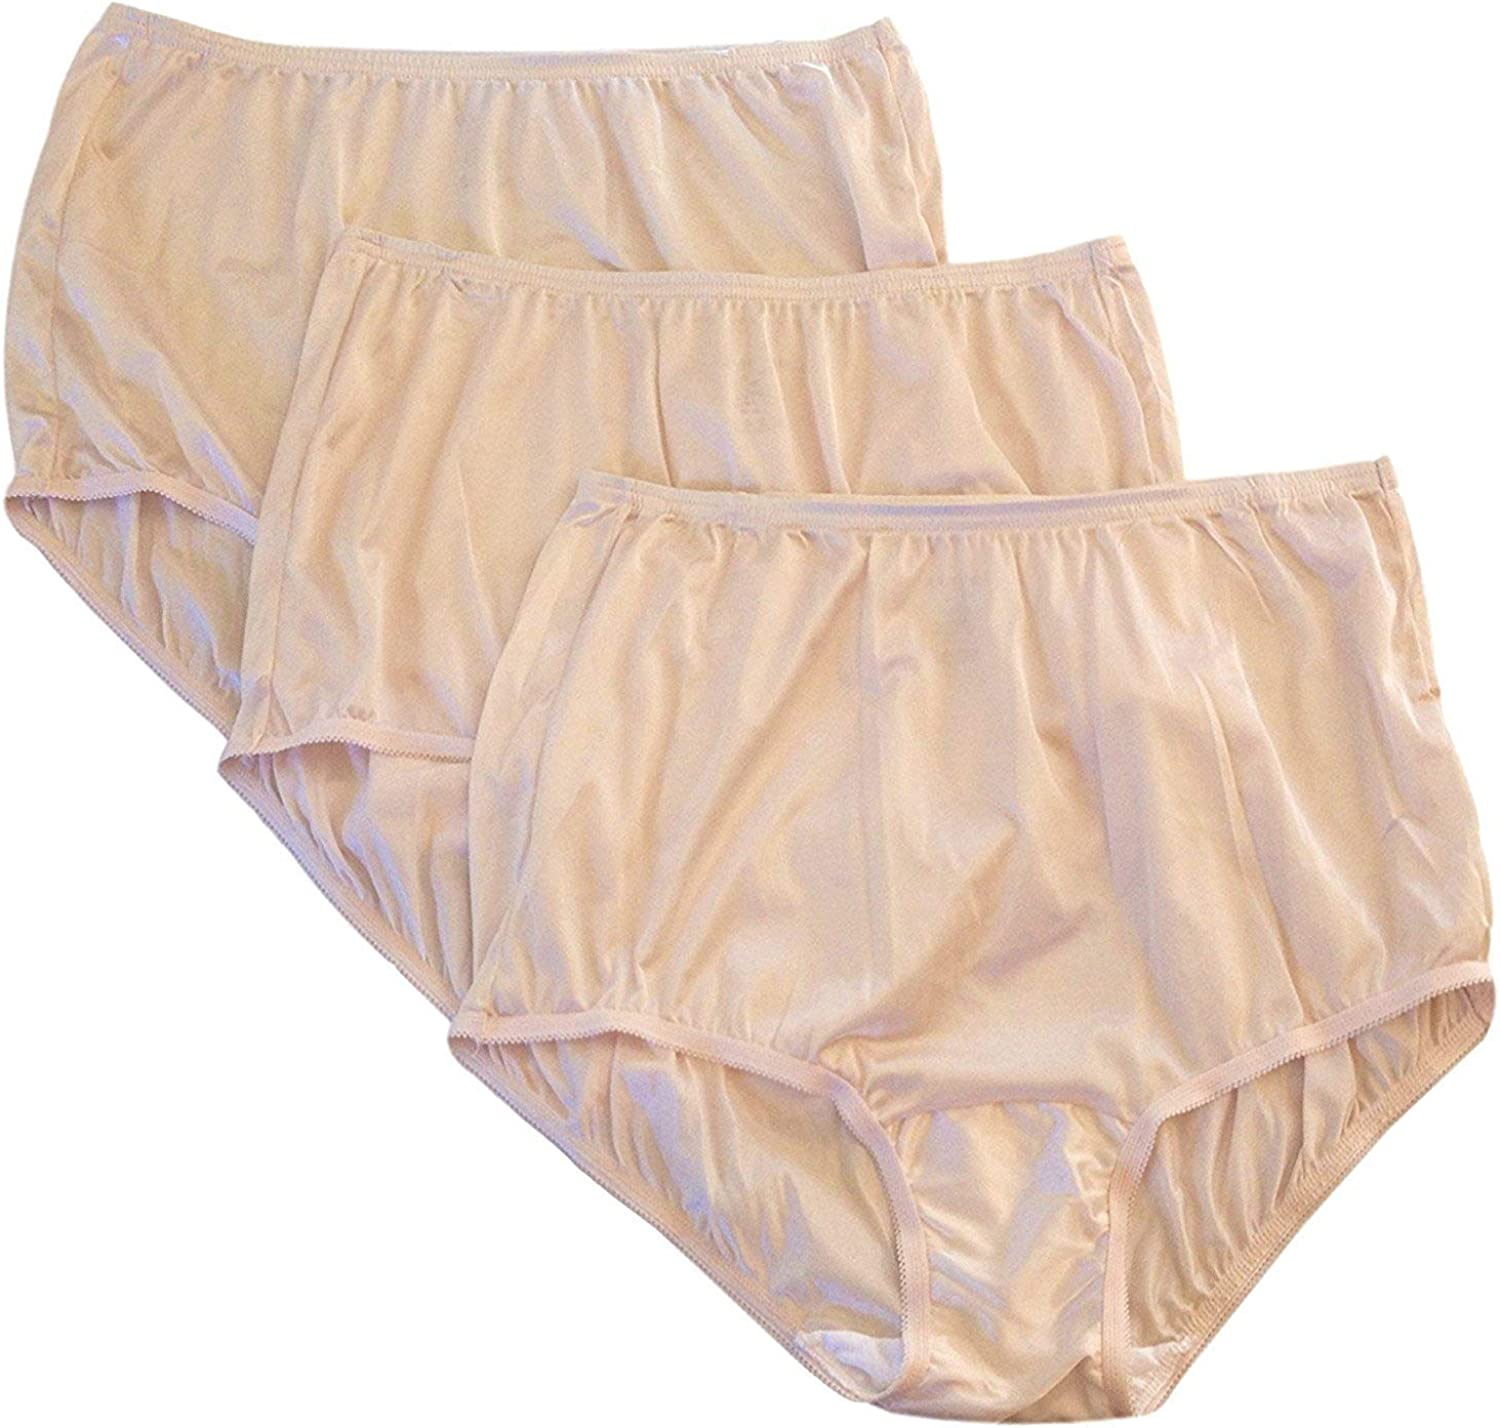 Vanity Fair Classic Ravissant Tailored Brief - Pack of 3 - 15712 at  Women's Clothing store